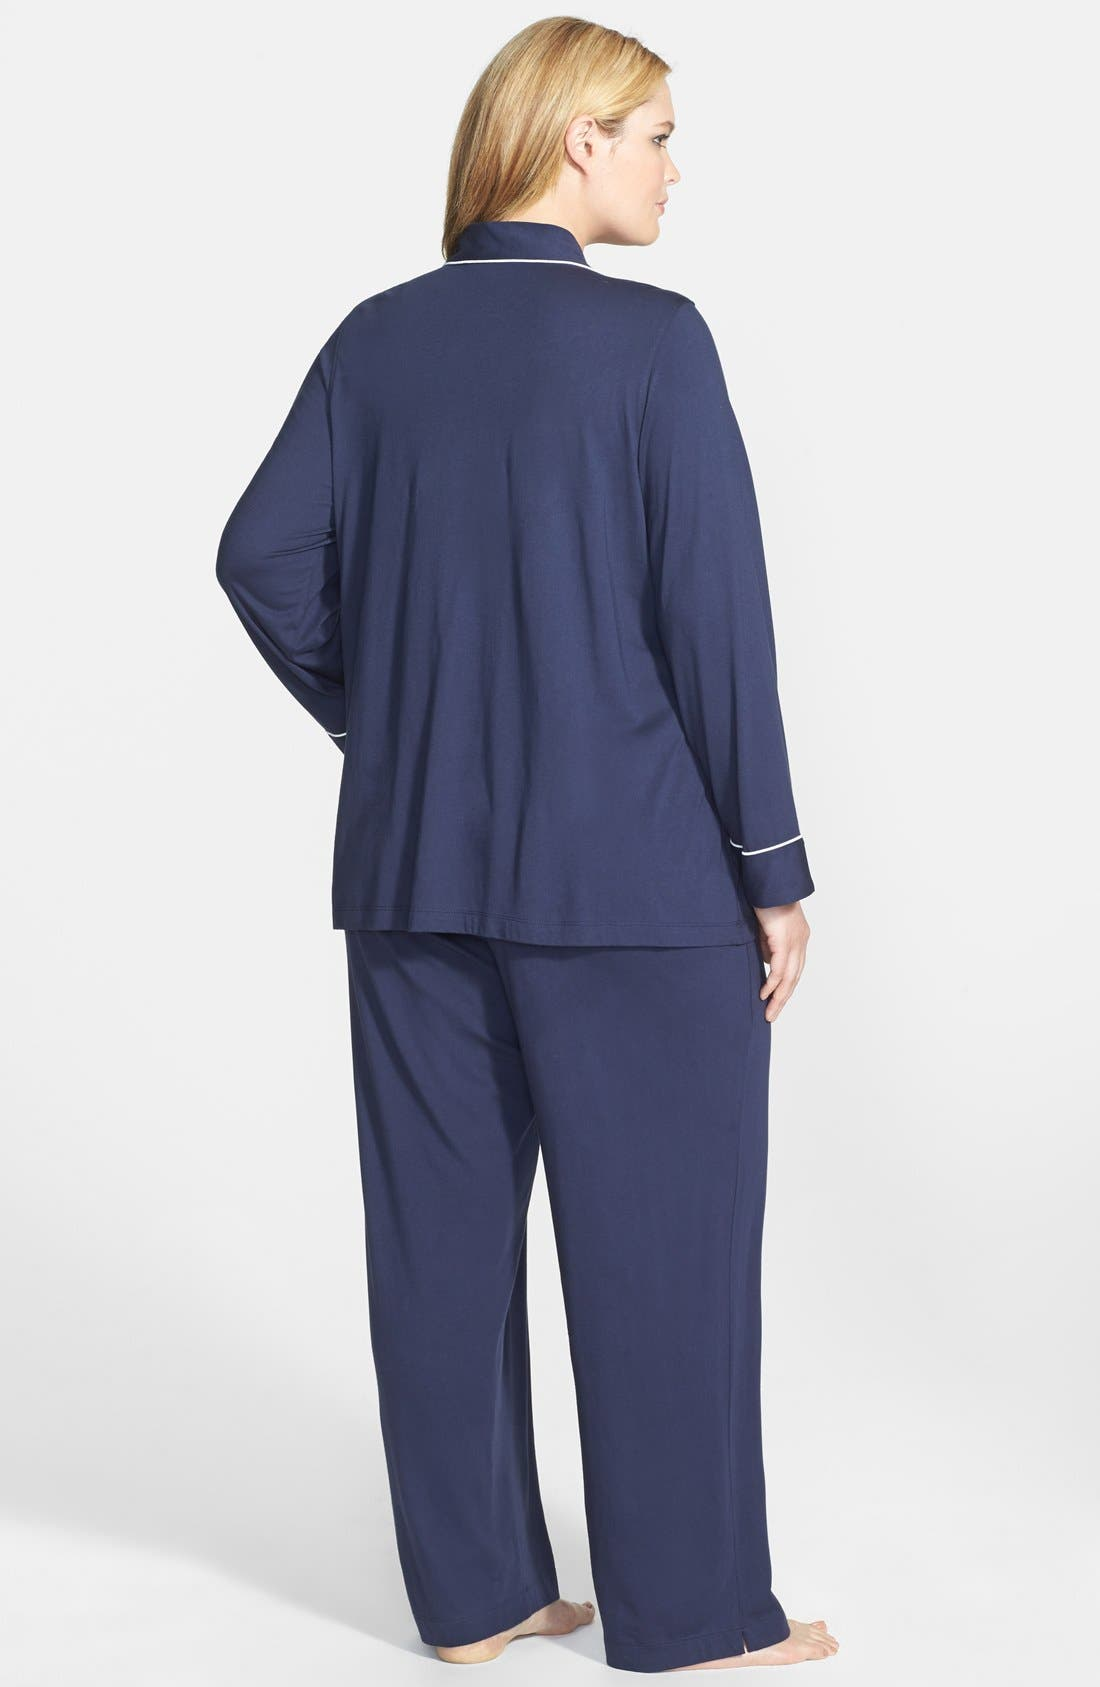 Knit Pajamas,                             Alternate thumbnail 2, color,                             410